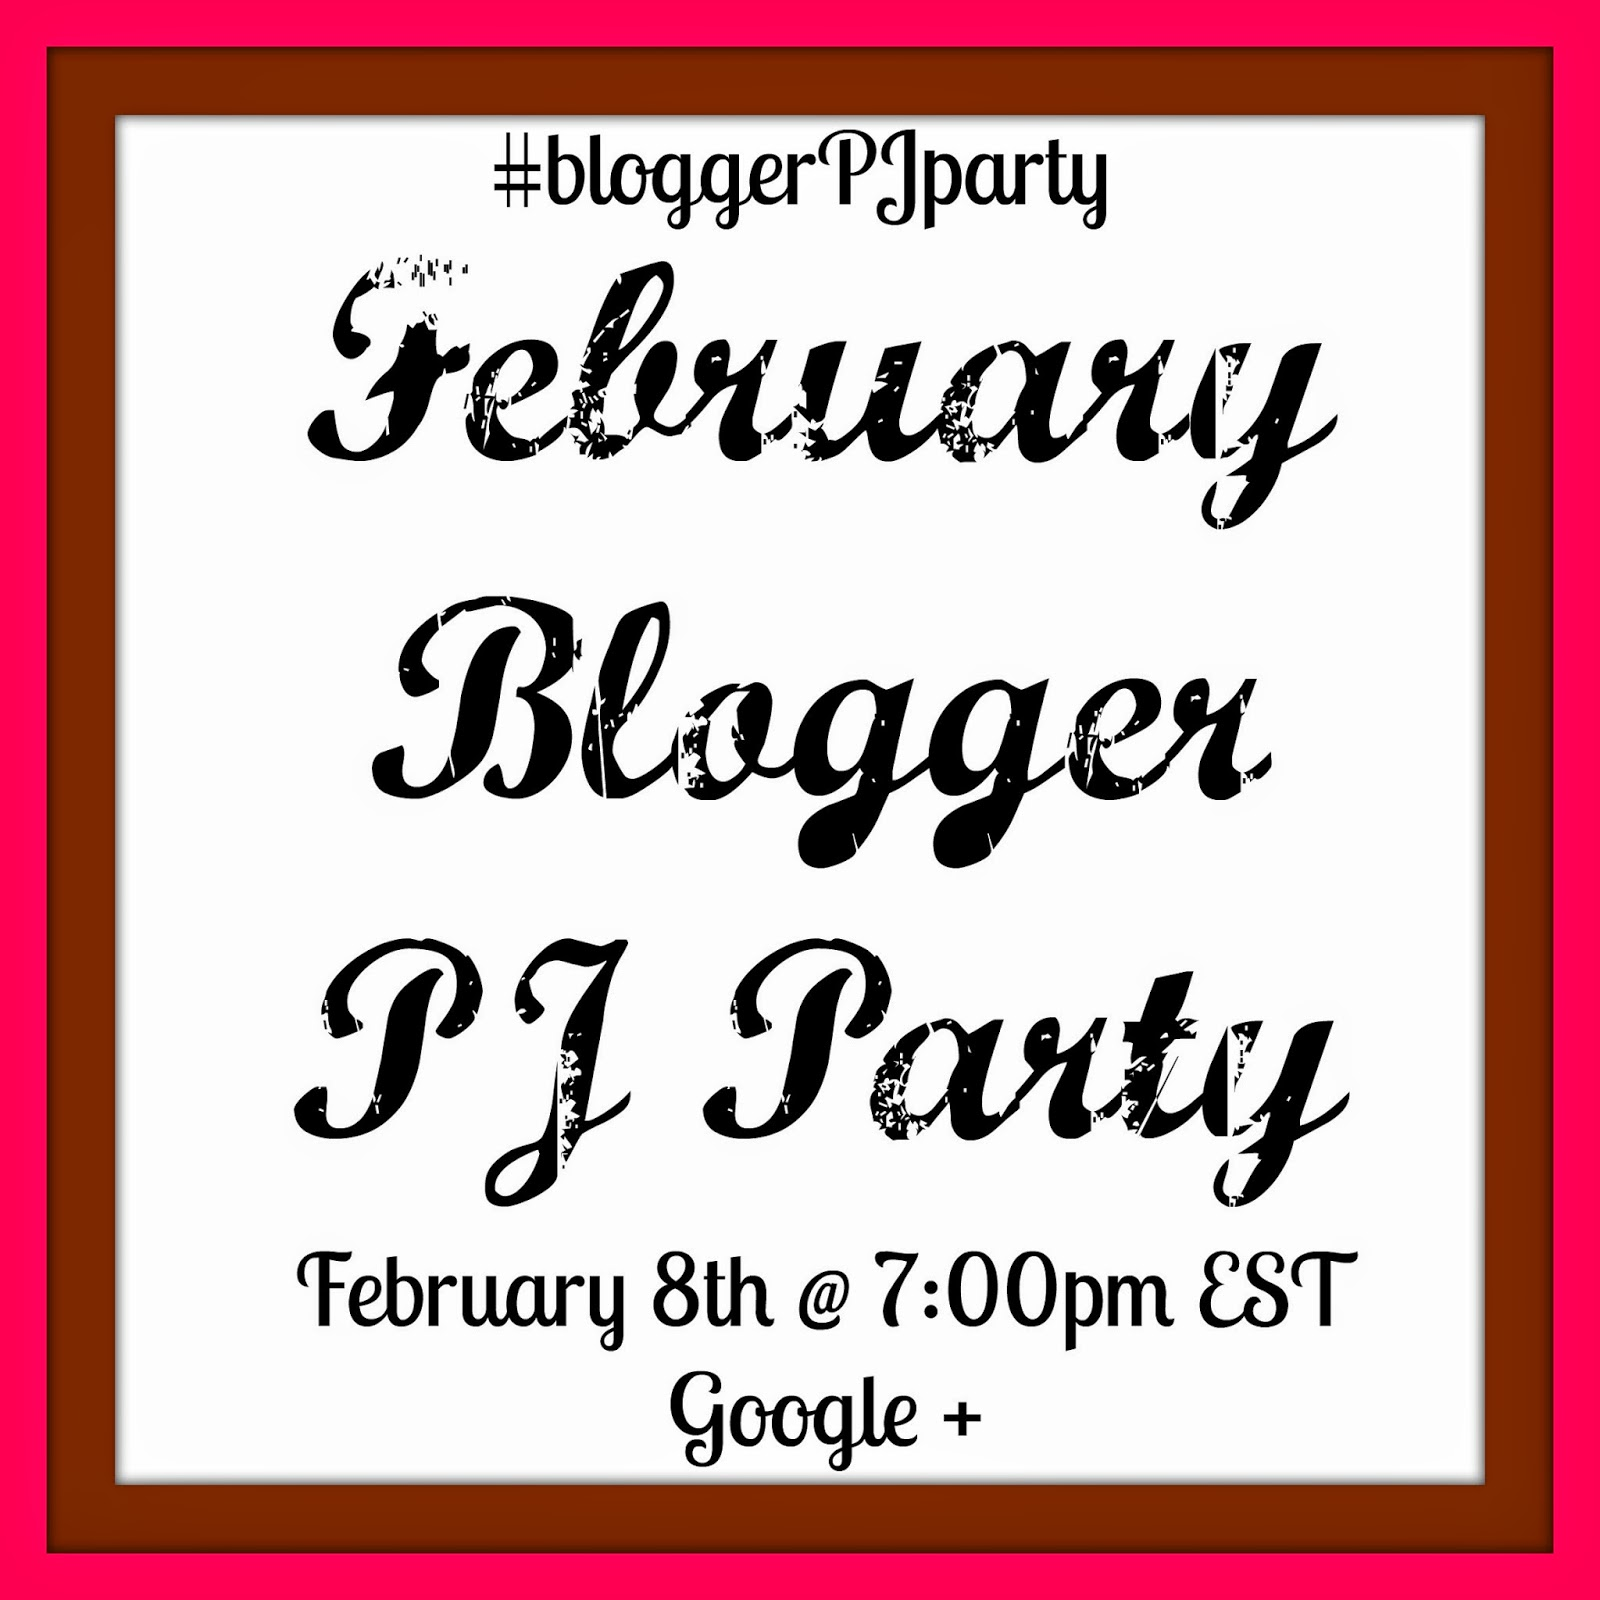 February #bloggerPJparty